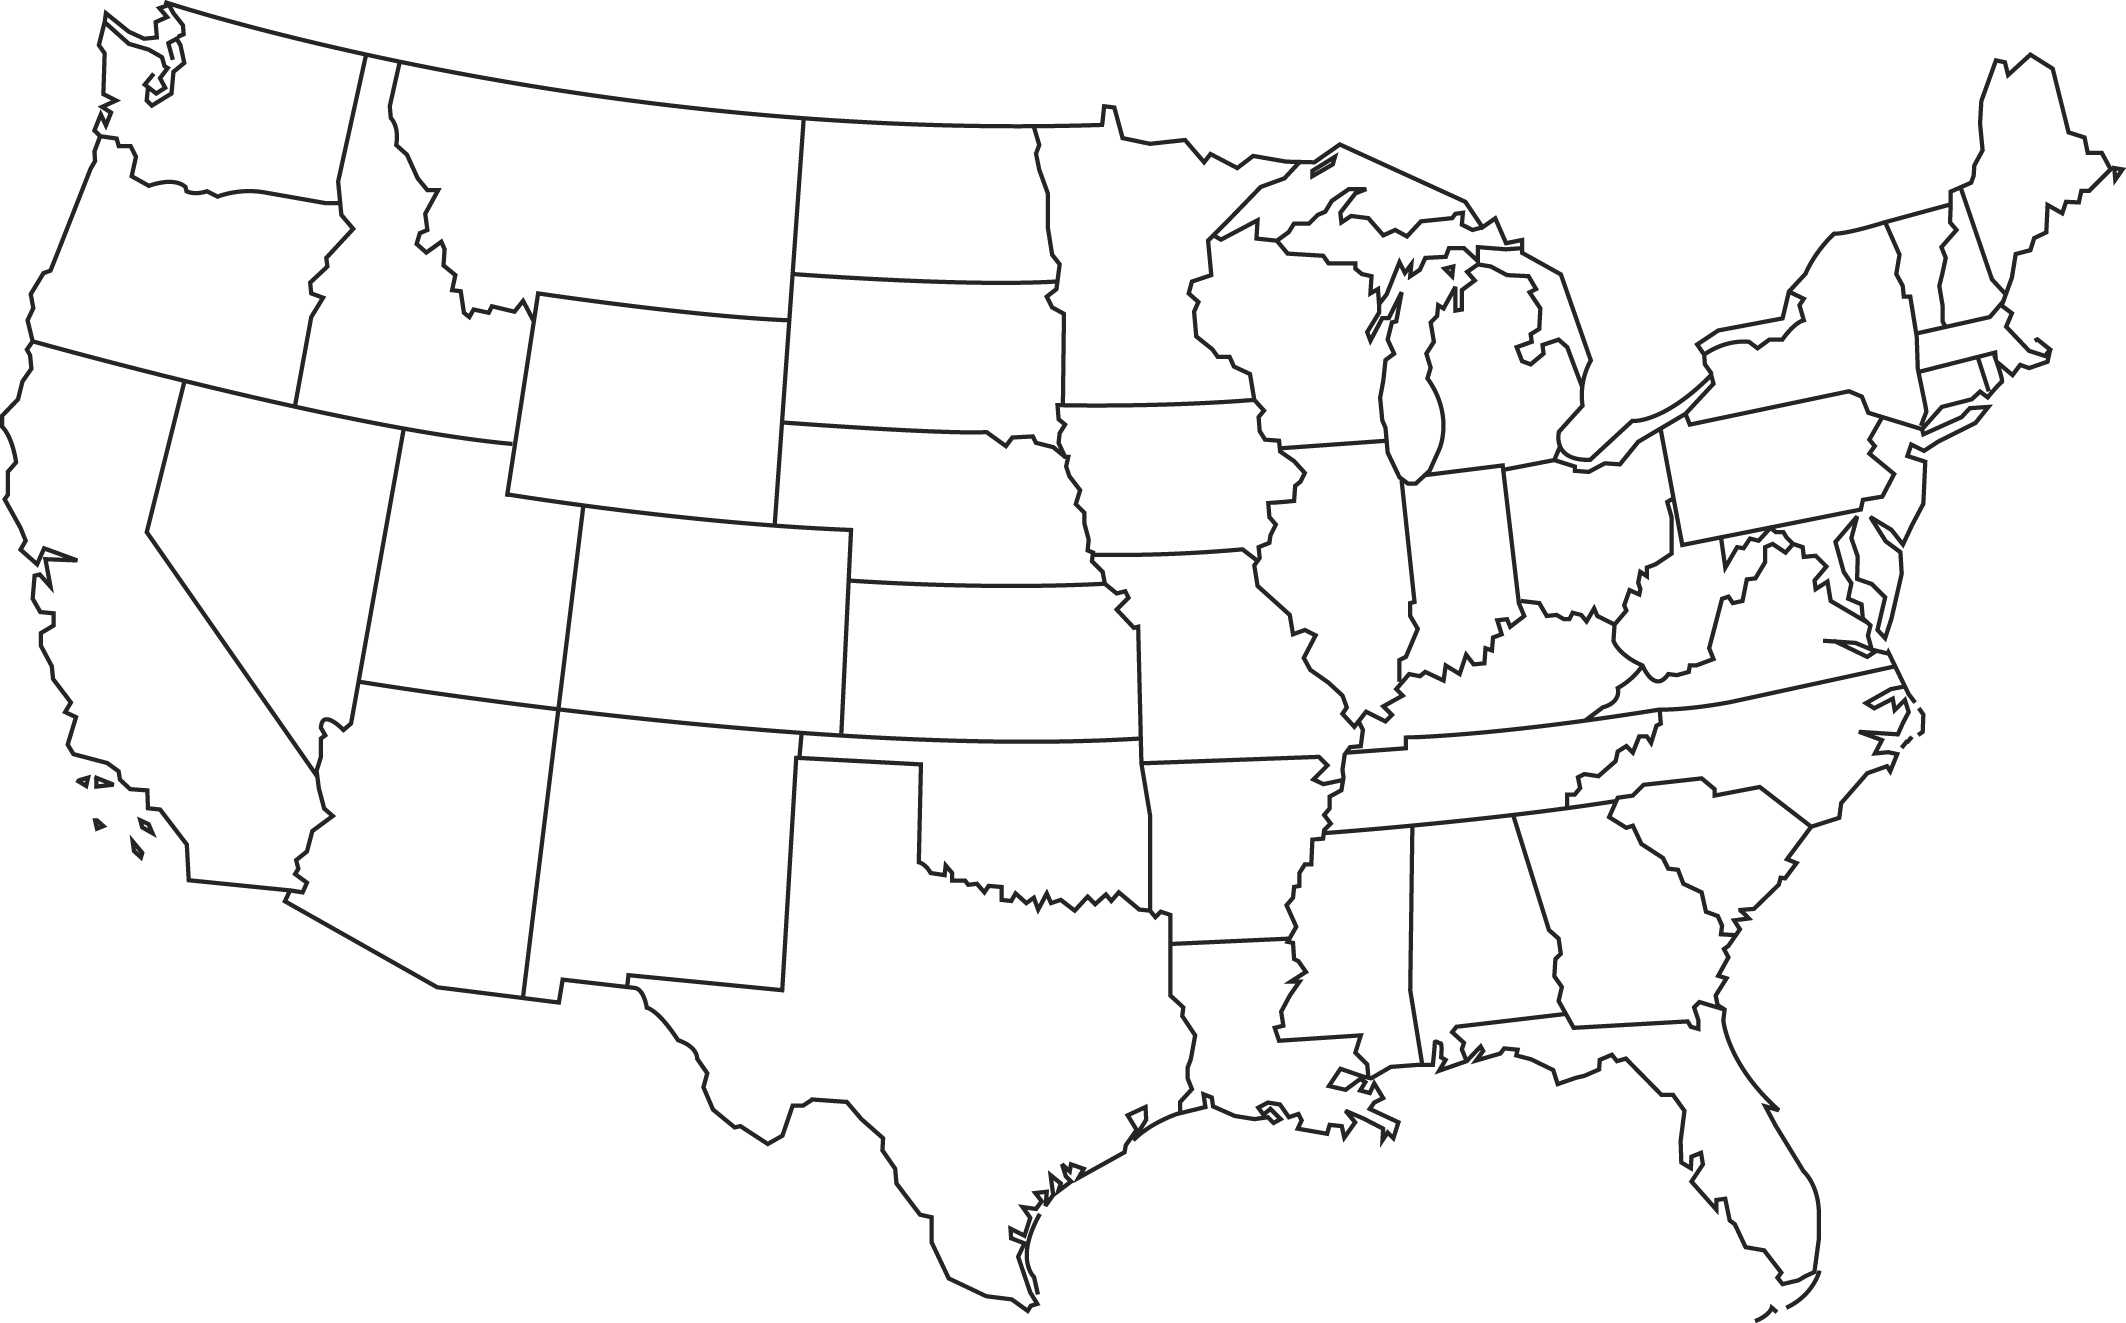 usa map template - Juve.cenitdelacabrera.co